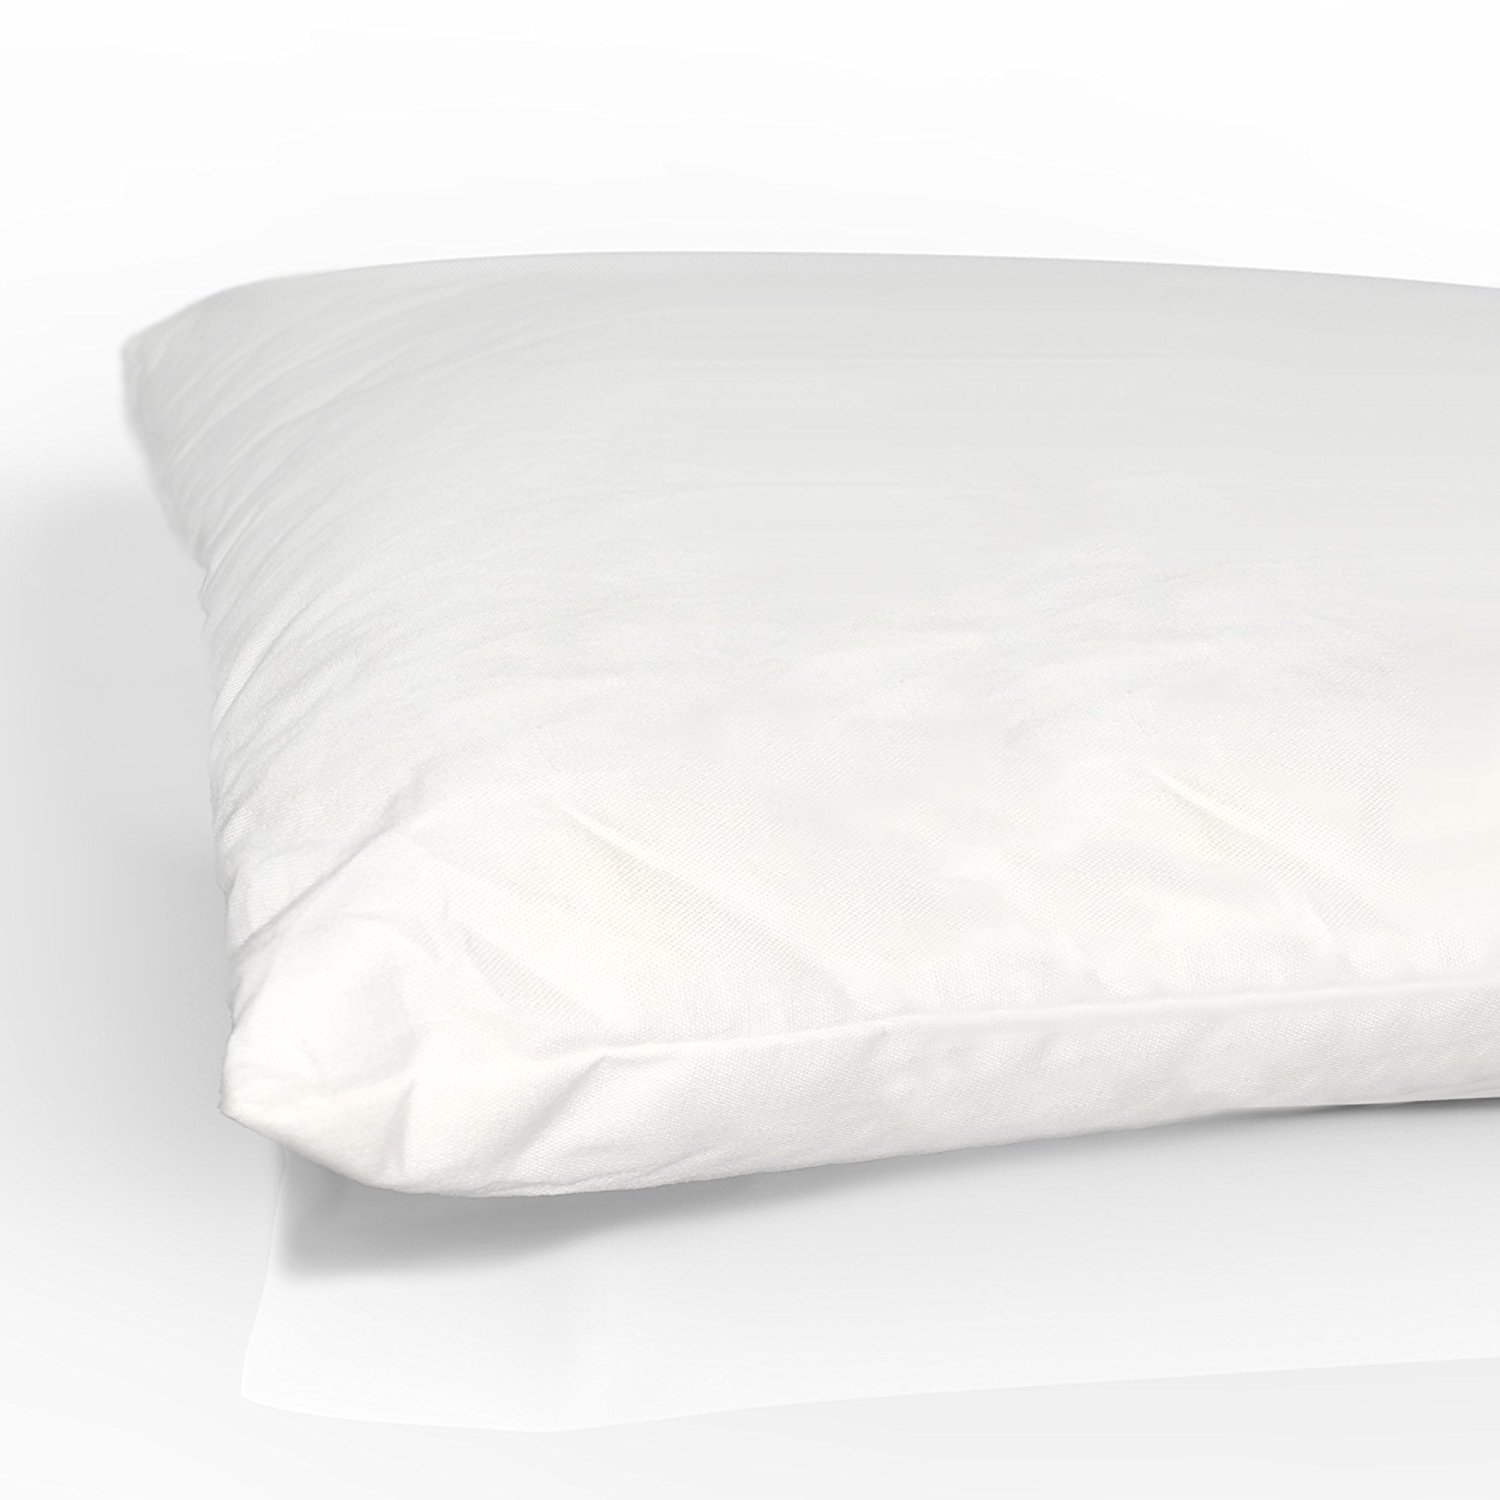 [2-Pack] Equinox Baby Toddler Pillows 100% Cotton Cover 13' x 18' - by Equinox International